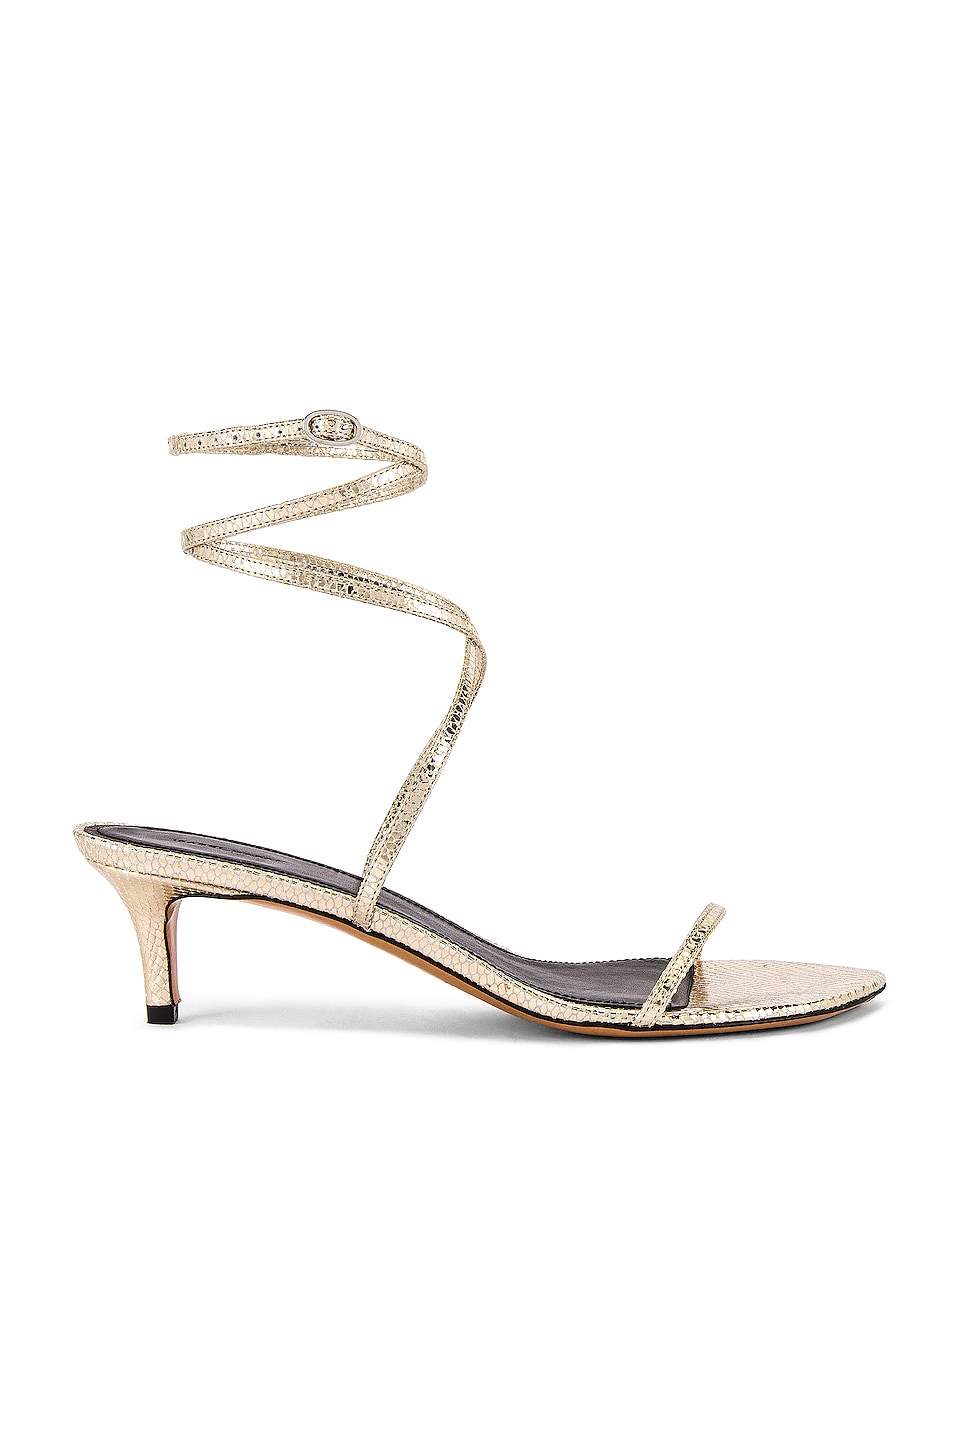 Isabel Marant Aridee Sandal in Gold